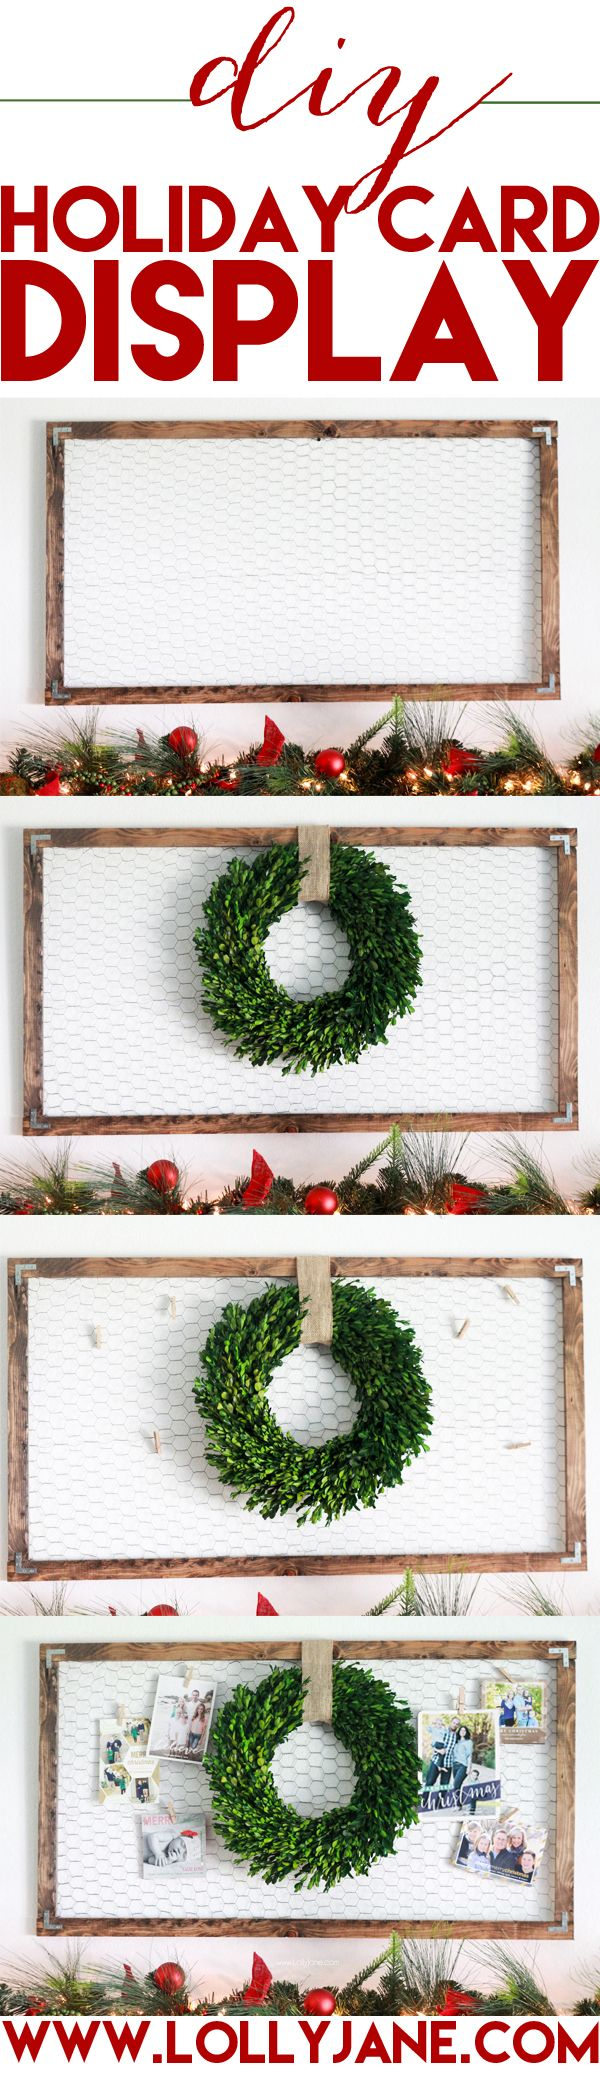 DIY Christmas & Holiday Card Display. The original card holder tutorial, so easy to make! Great way to display all your Christmas cards and use year round as a DIY bulletin board holder too! @lollyjaneblog: